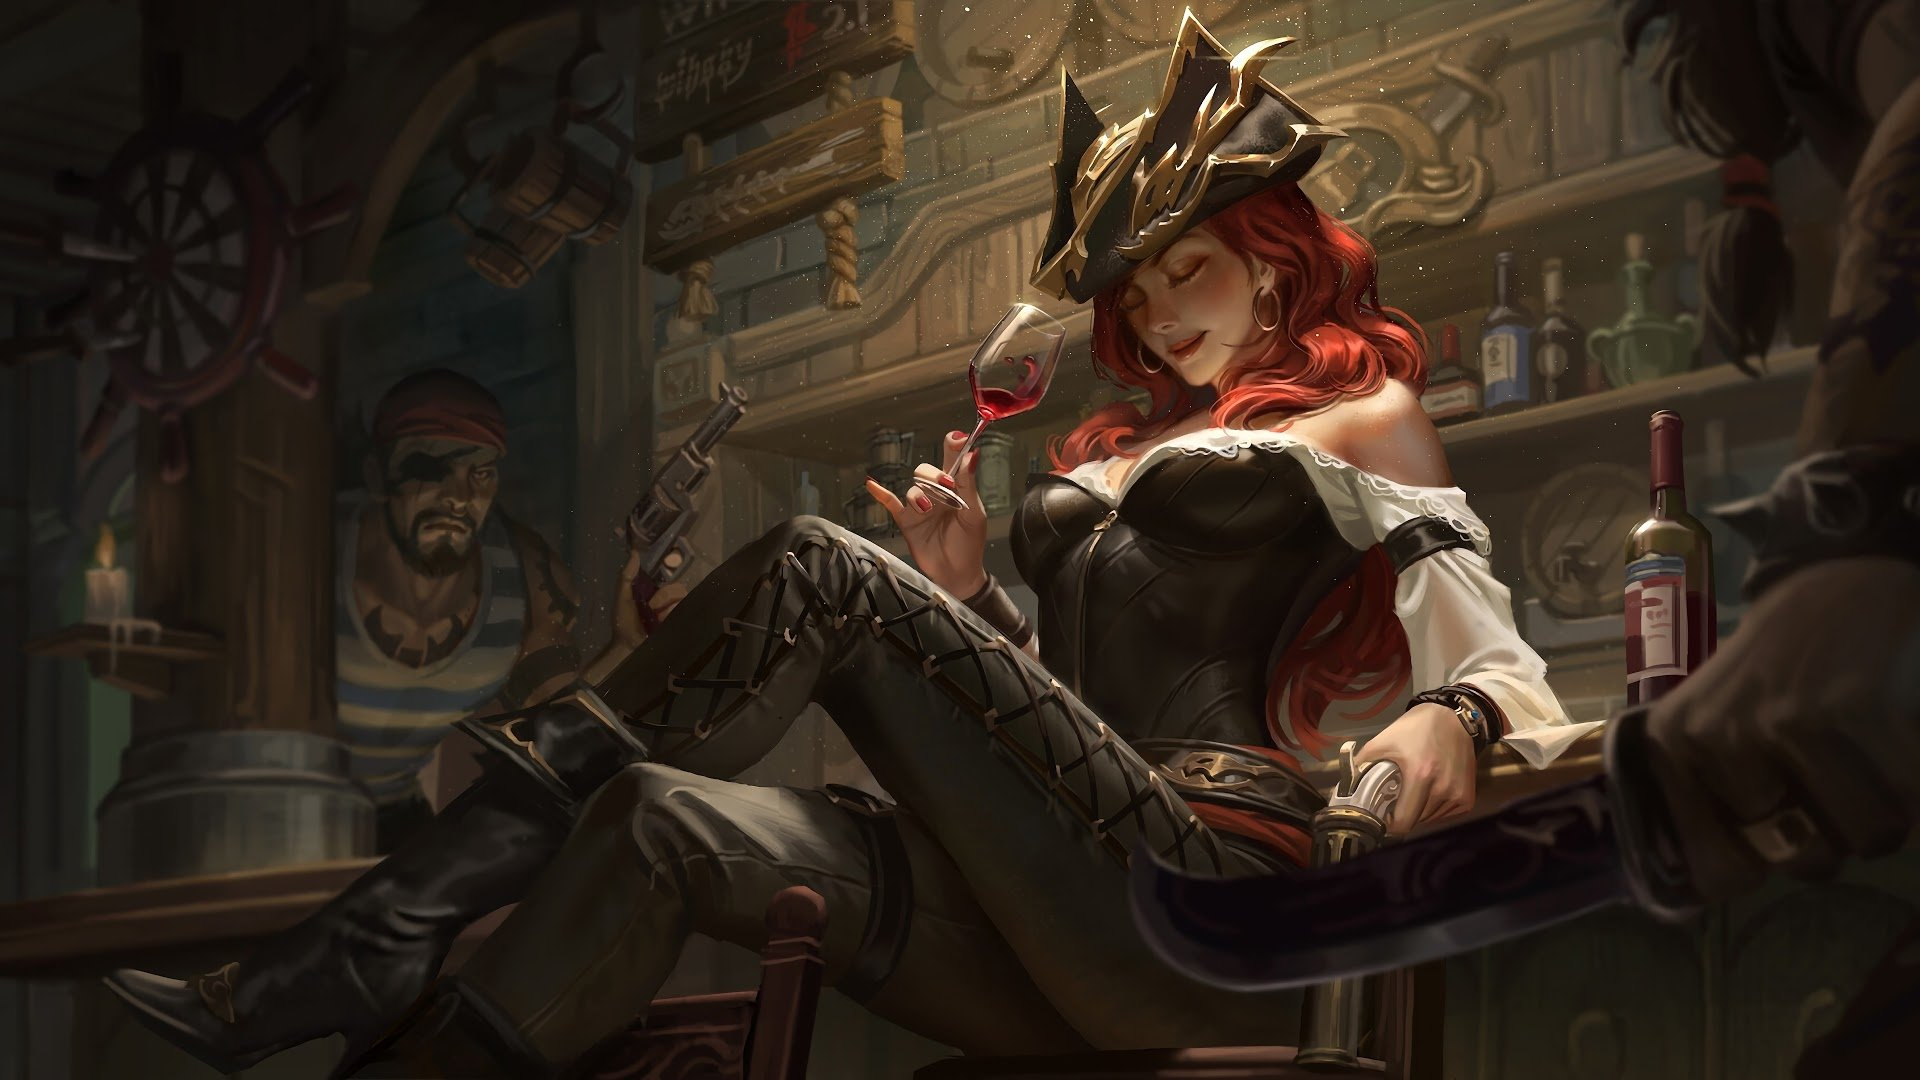 Classic Miss Fortune Hd Wallpaper Background Image 1920x1080